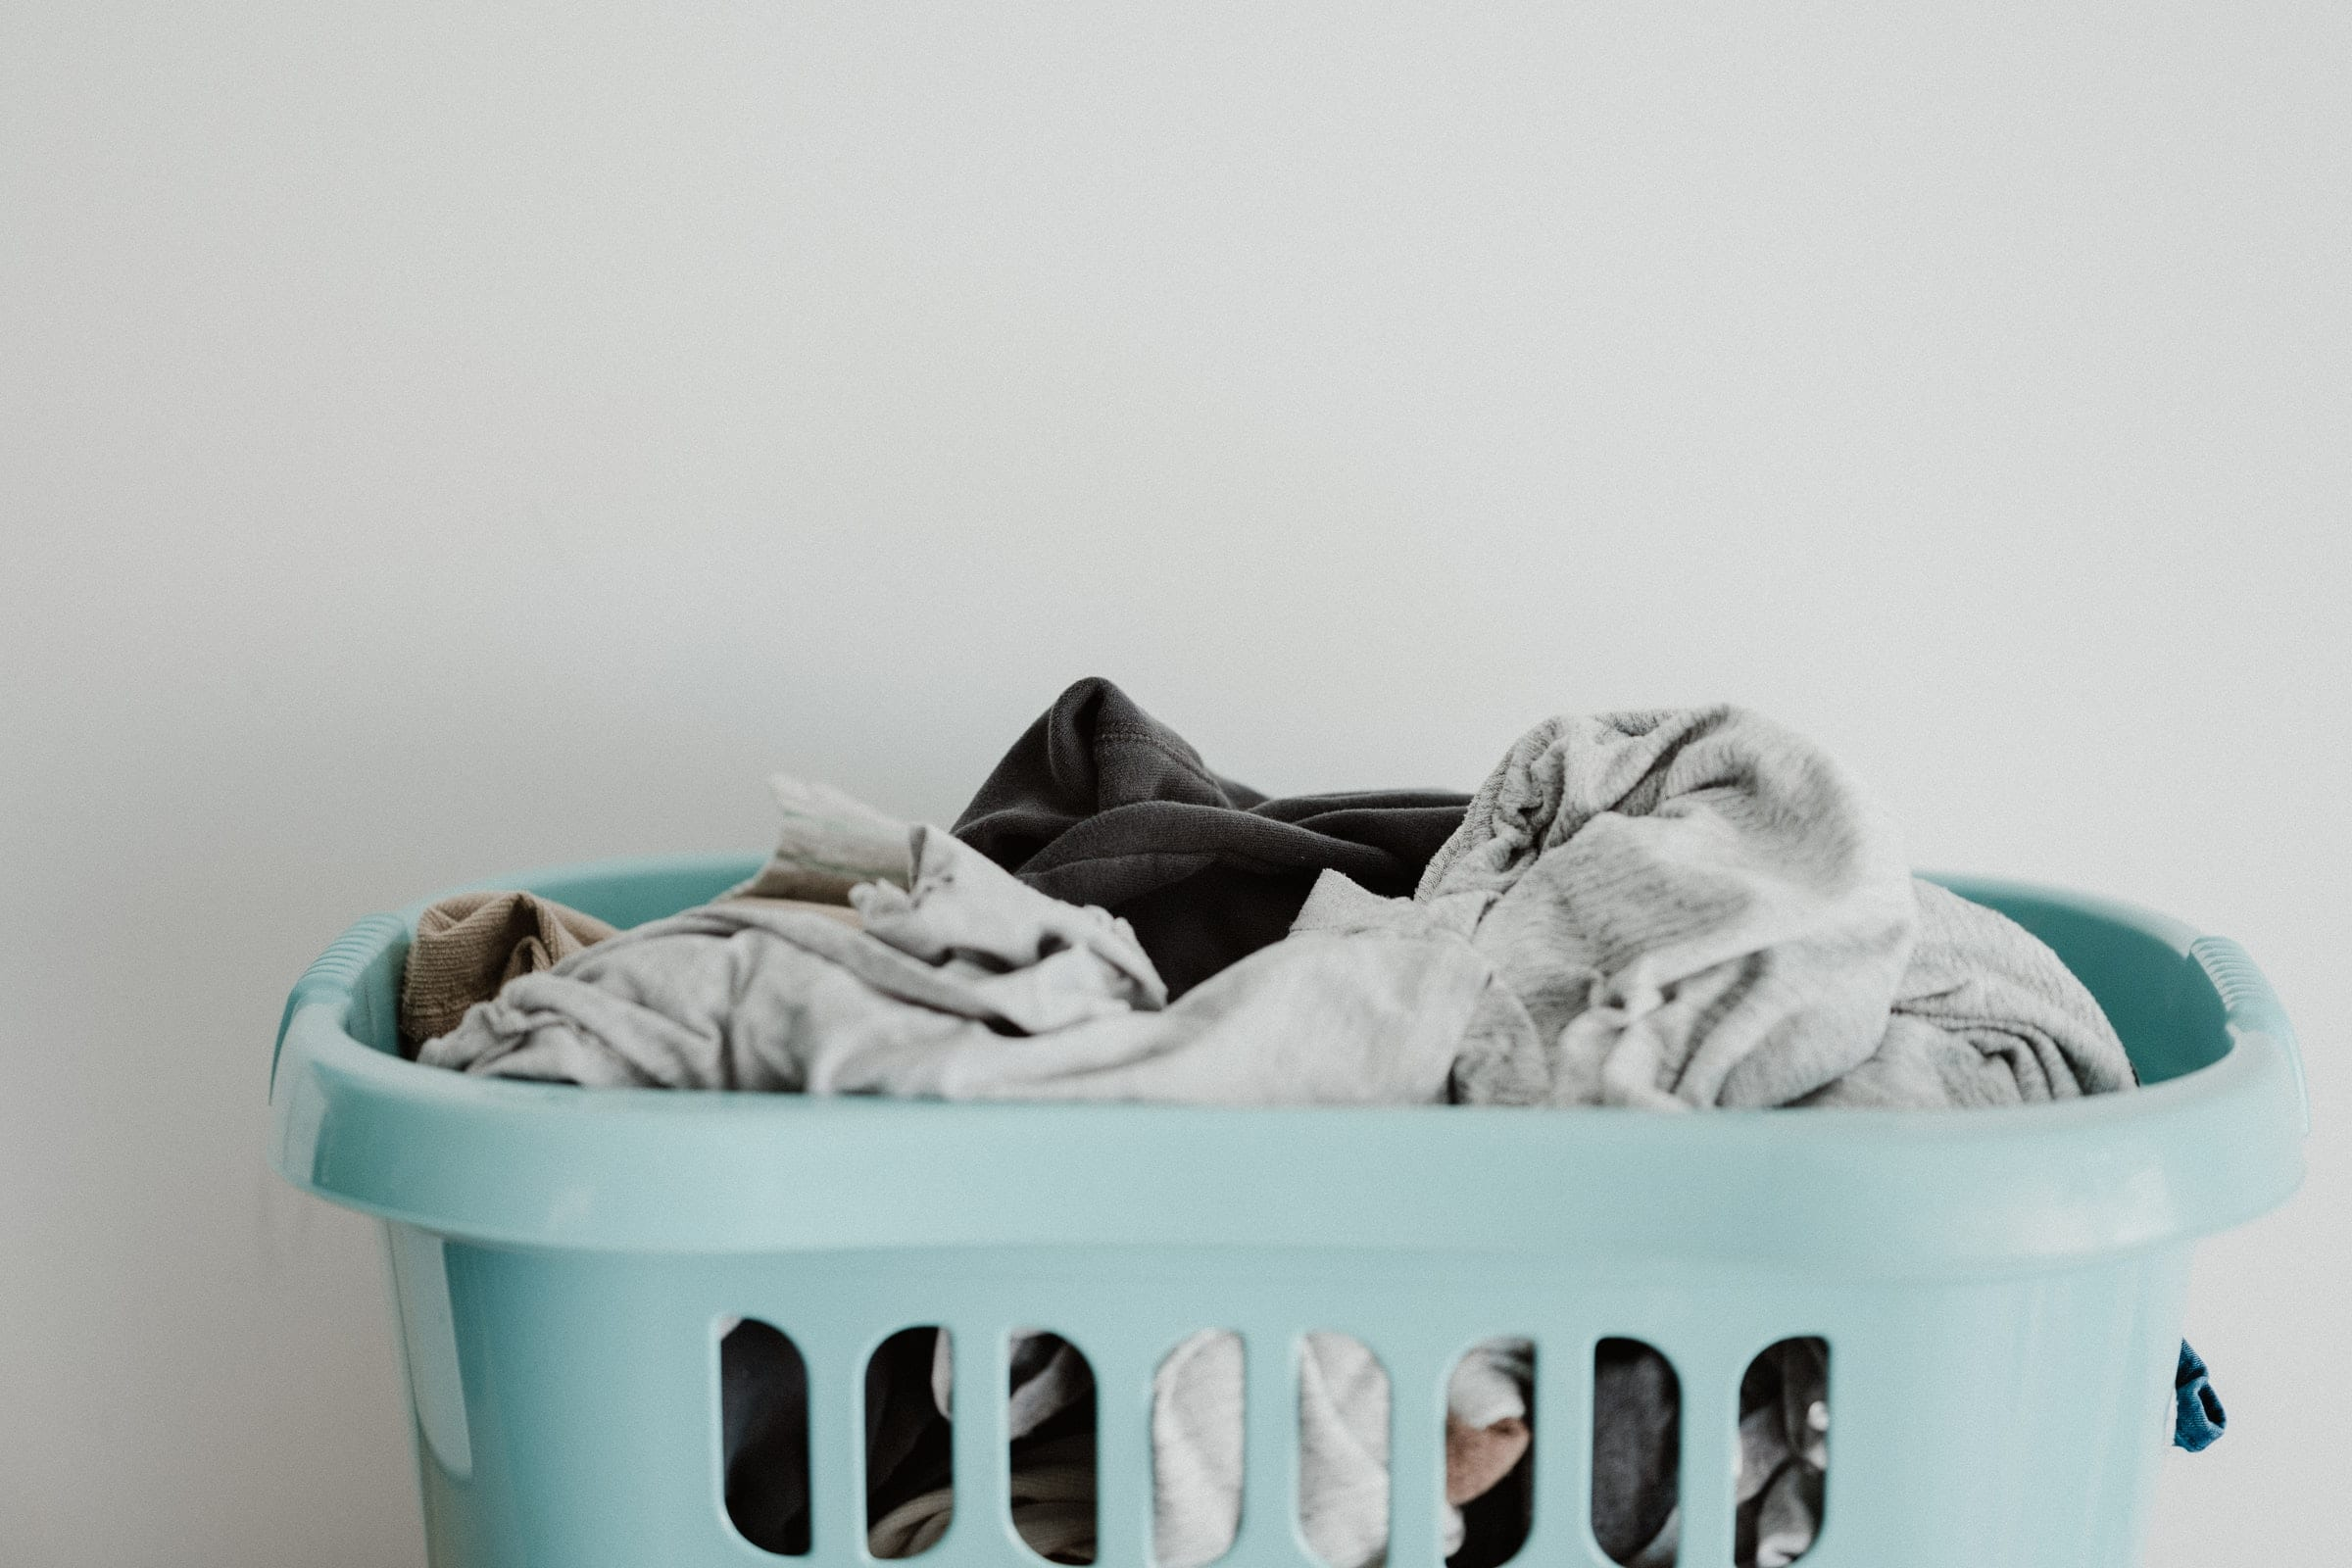 a basket of laundry. Laundry can signify the mundane things we have to do in our lives. We want to make business boring again.